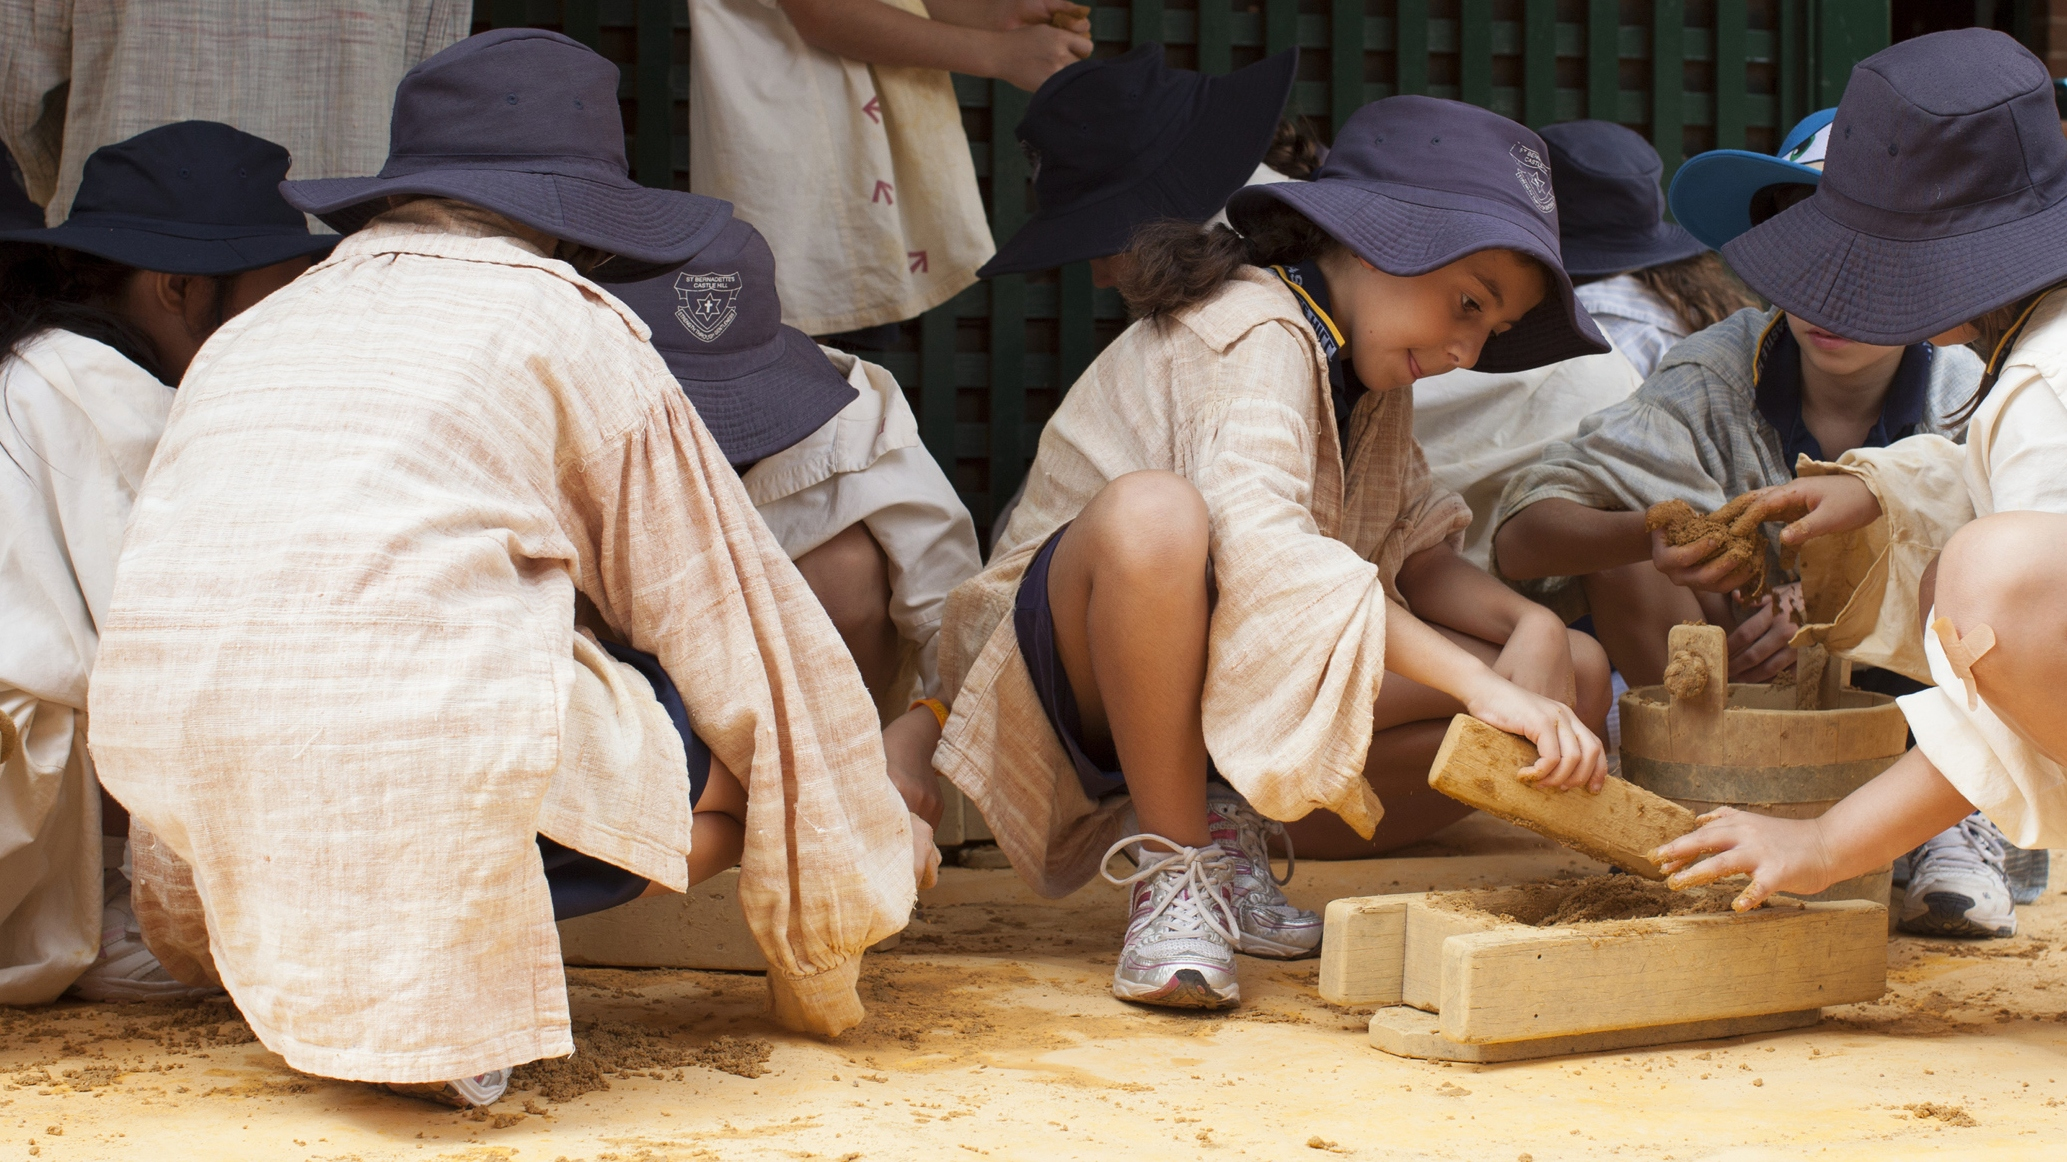 Children  dressed as convicts using reproduction brick making equipment to make sand bricks.